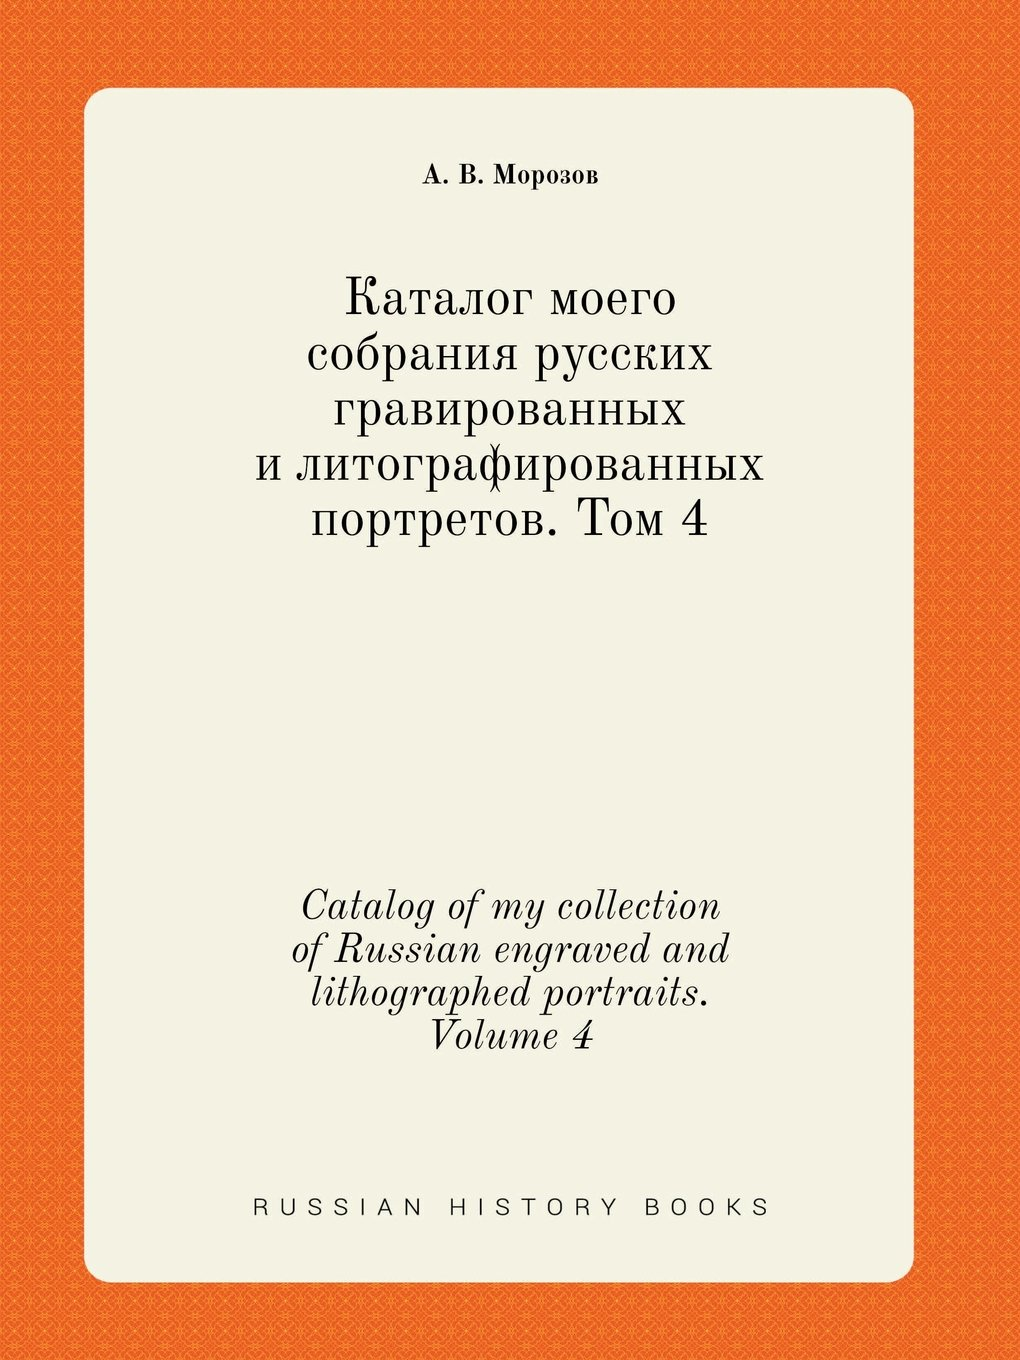 Download Catalog of my collection of Russian engraved and lithographed portraits. Volume 4 (Russian Edition) PDF